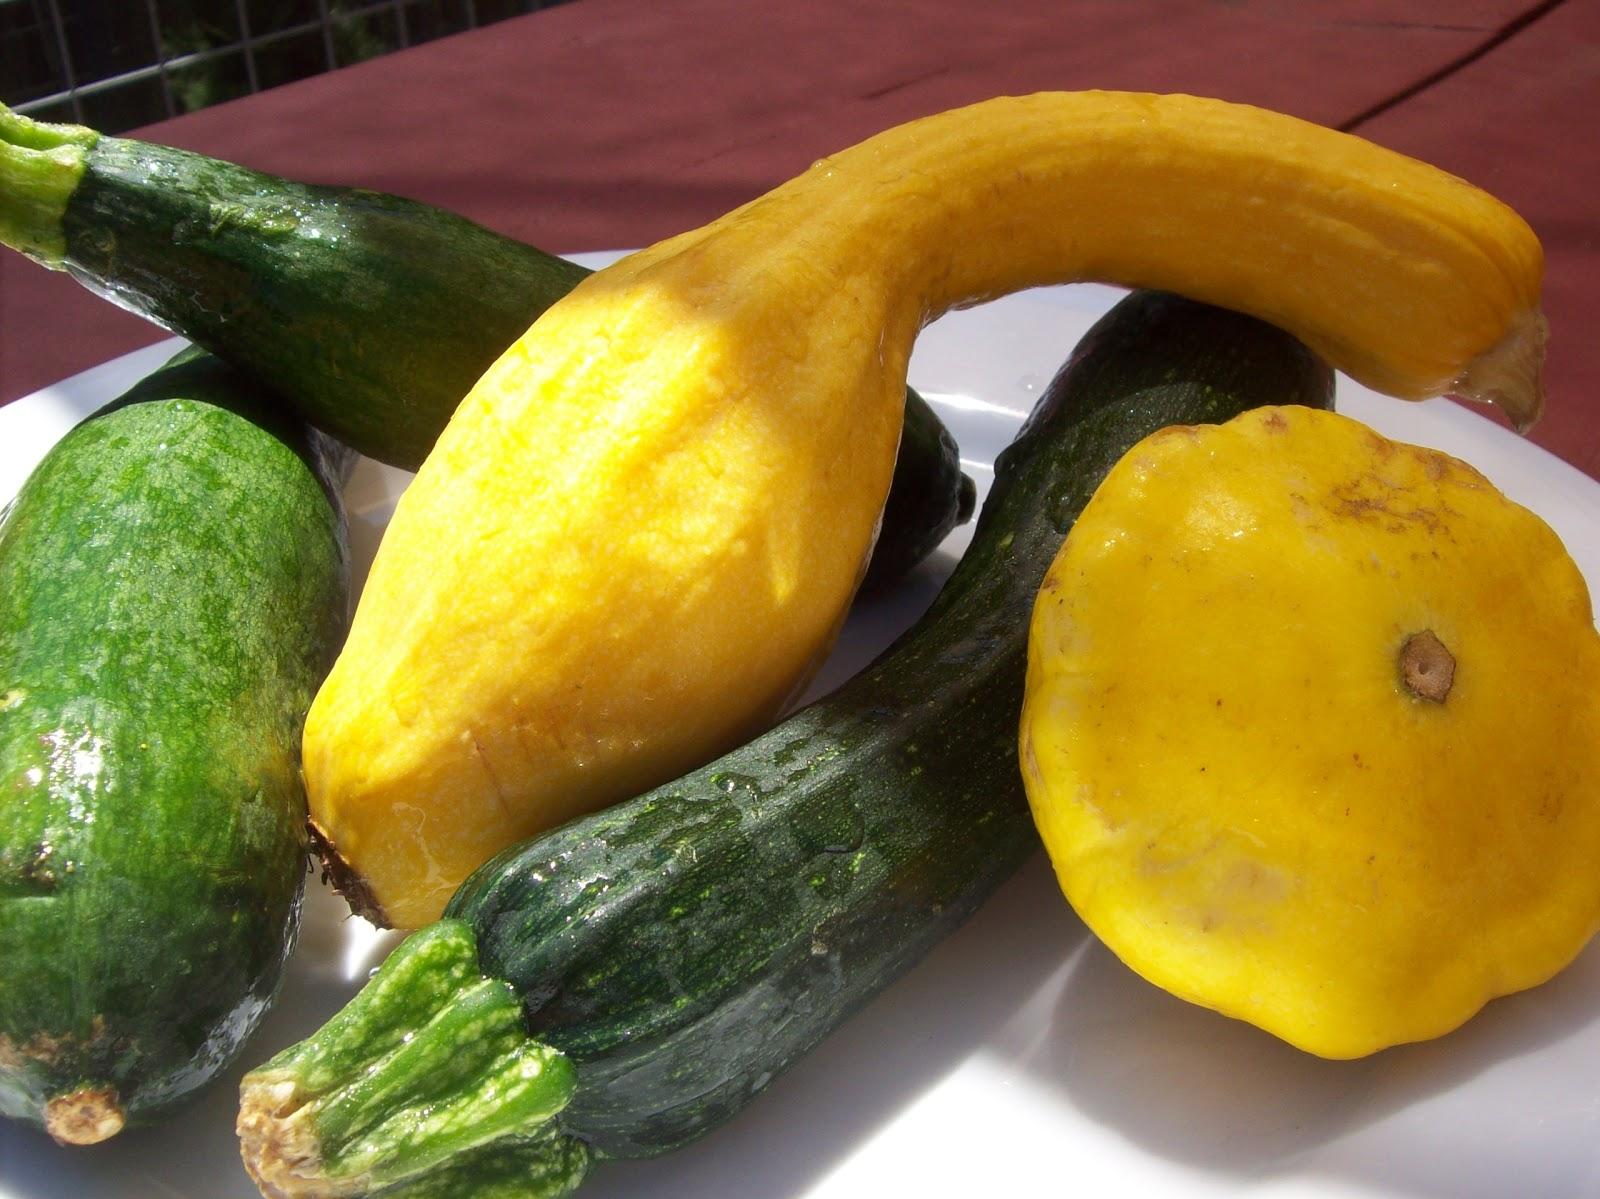 Yellow squash healthy recipes : Greek yogurt dip for ...